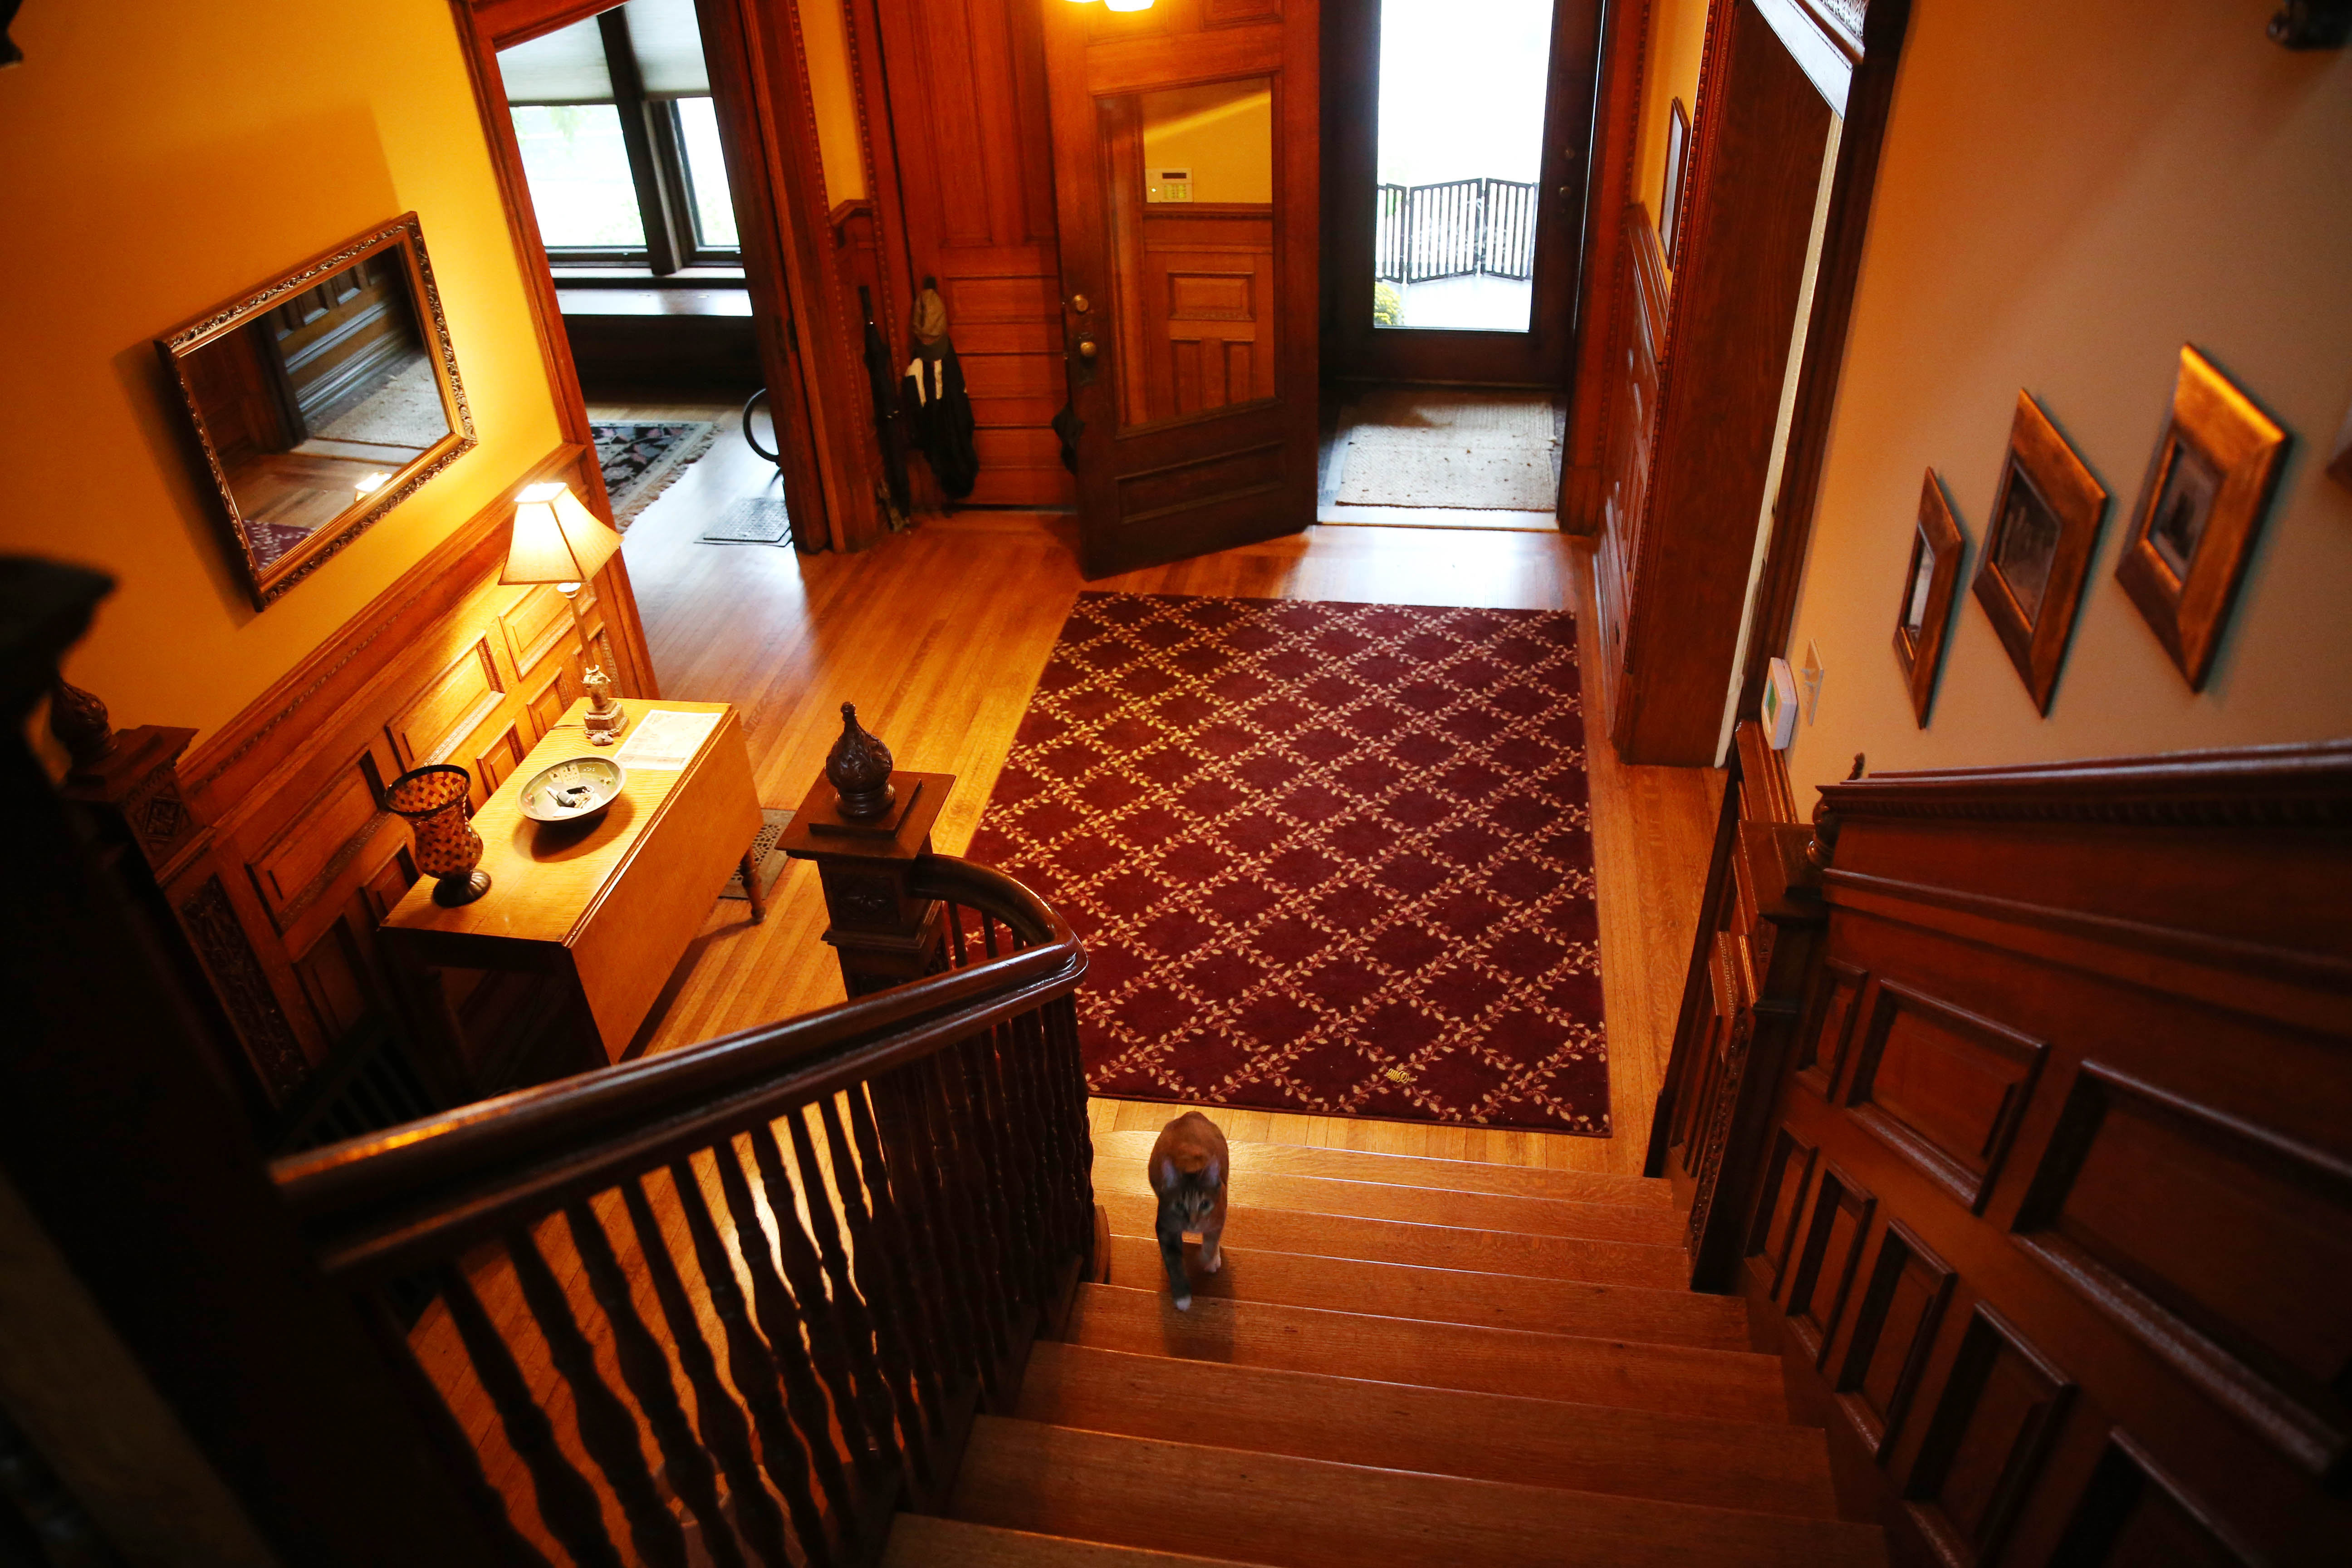 Whispers for decades have surrounded this house on Richmond Ave. The present tenant felt someone push her from behind while she was on the stairs ( about three steps from the bottom) and she tumbled to the floor. Photo taken, Friday, Oct. 21, 2016. (Sharon Cantillon/Buffalo News)